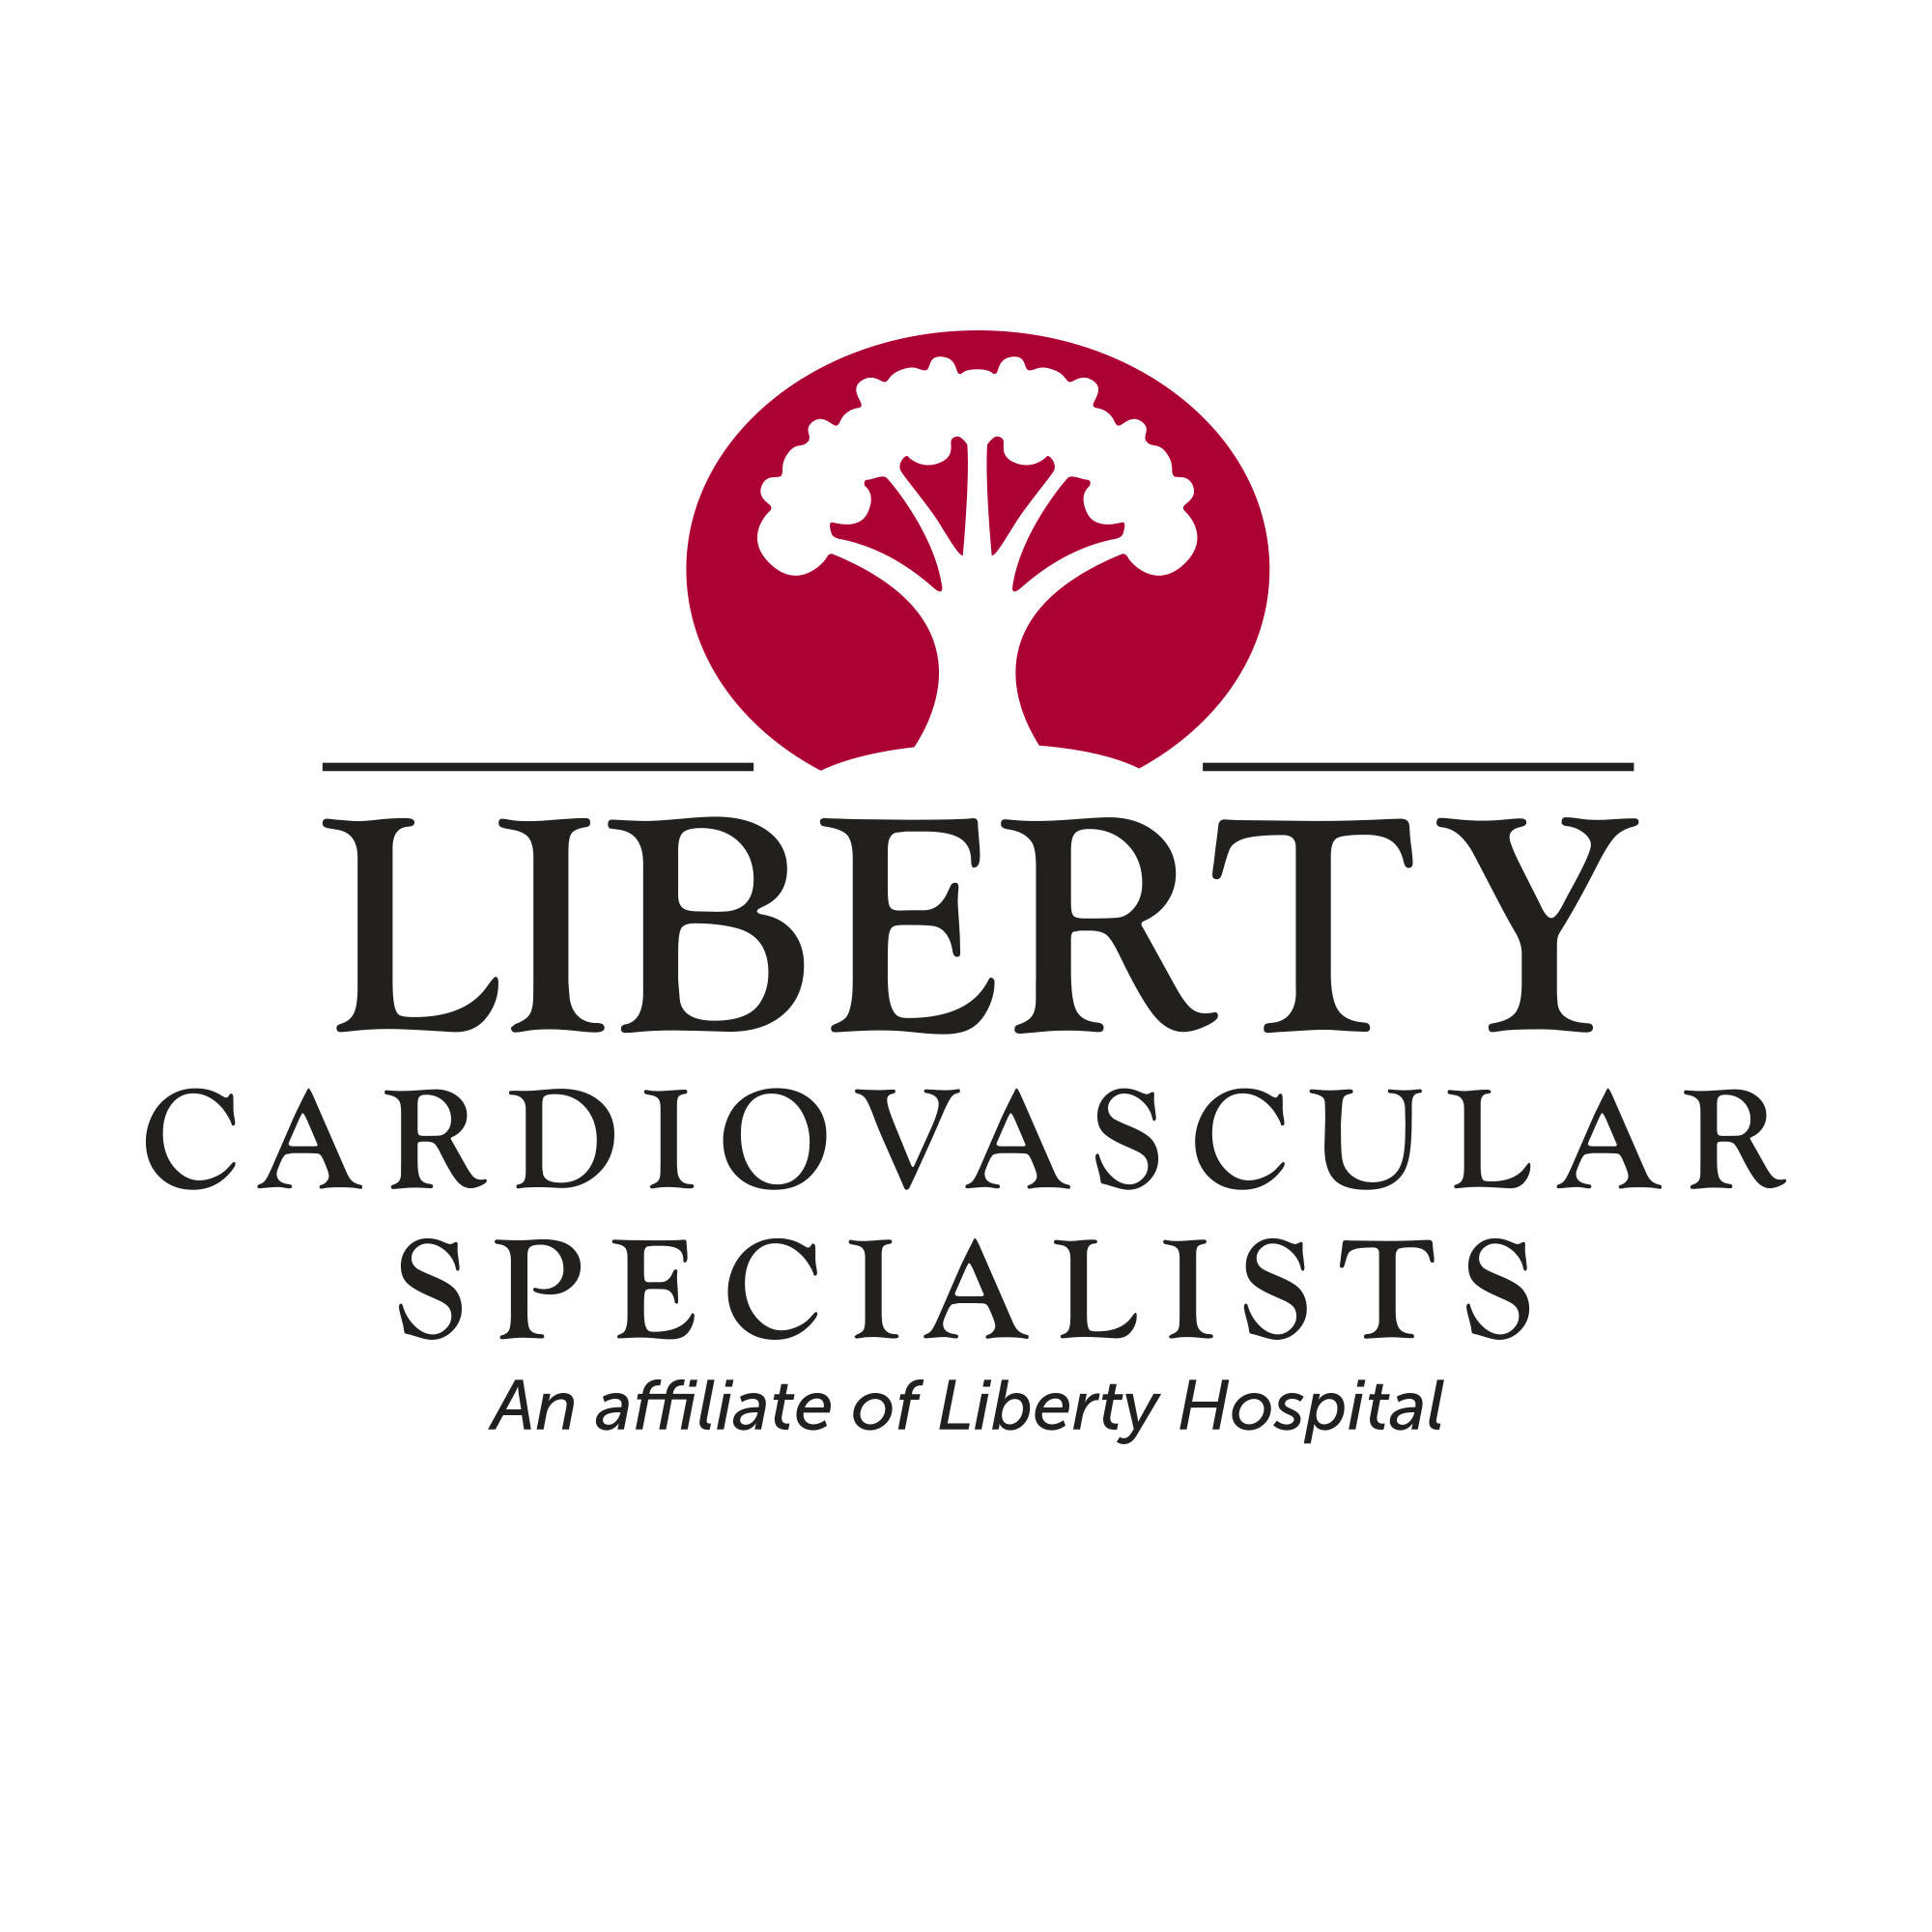 Liberty Cardiovascular Specialists